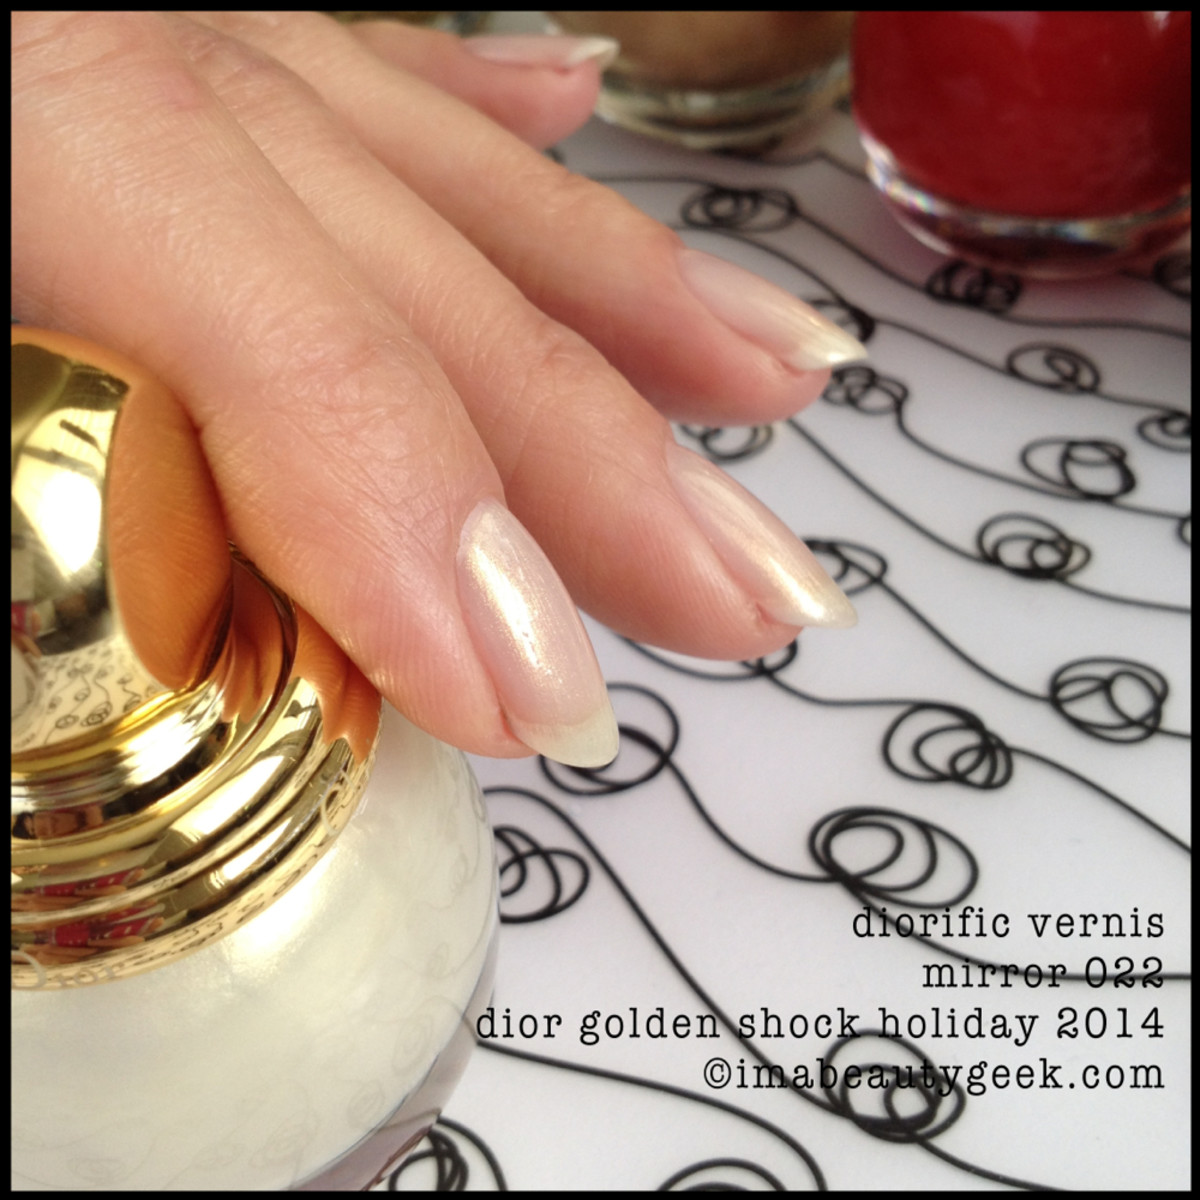 Dior Golden Shock Holiday 2014 Vernis Mirror 022